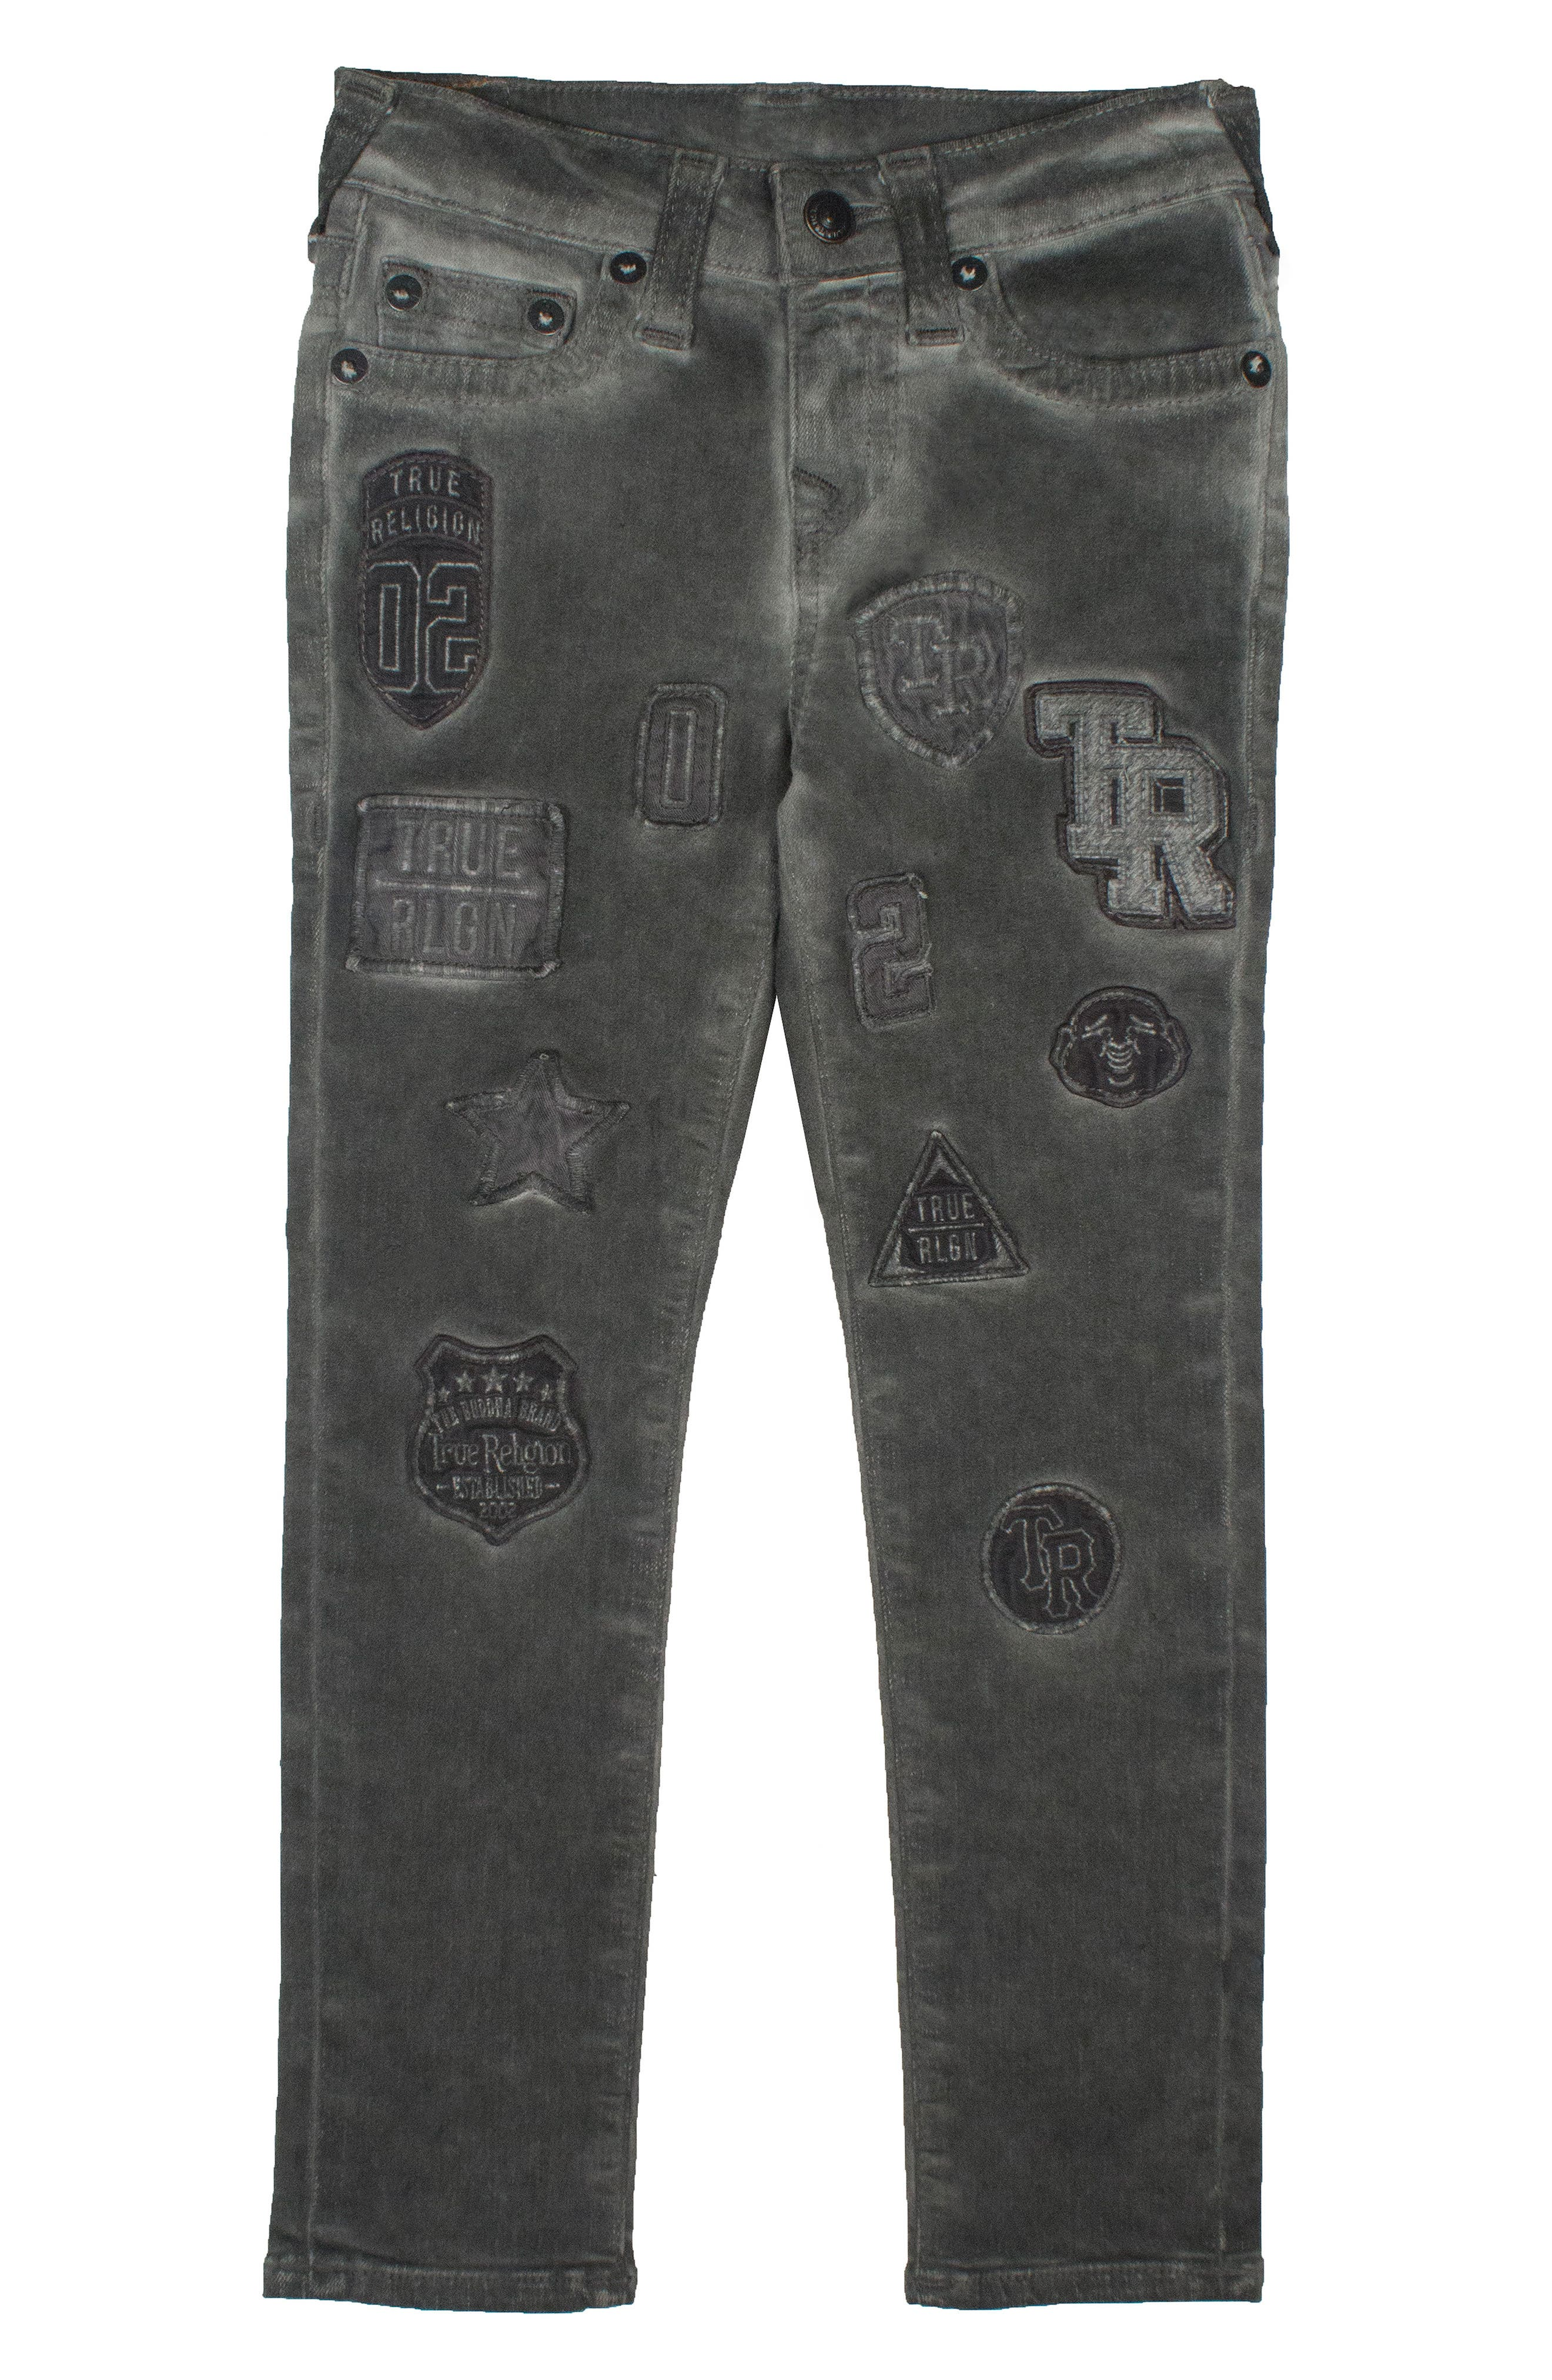 Alternate Image 1 Selected - True Religion Brand Jeans Rocco Single End Jeans (Big Boys)